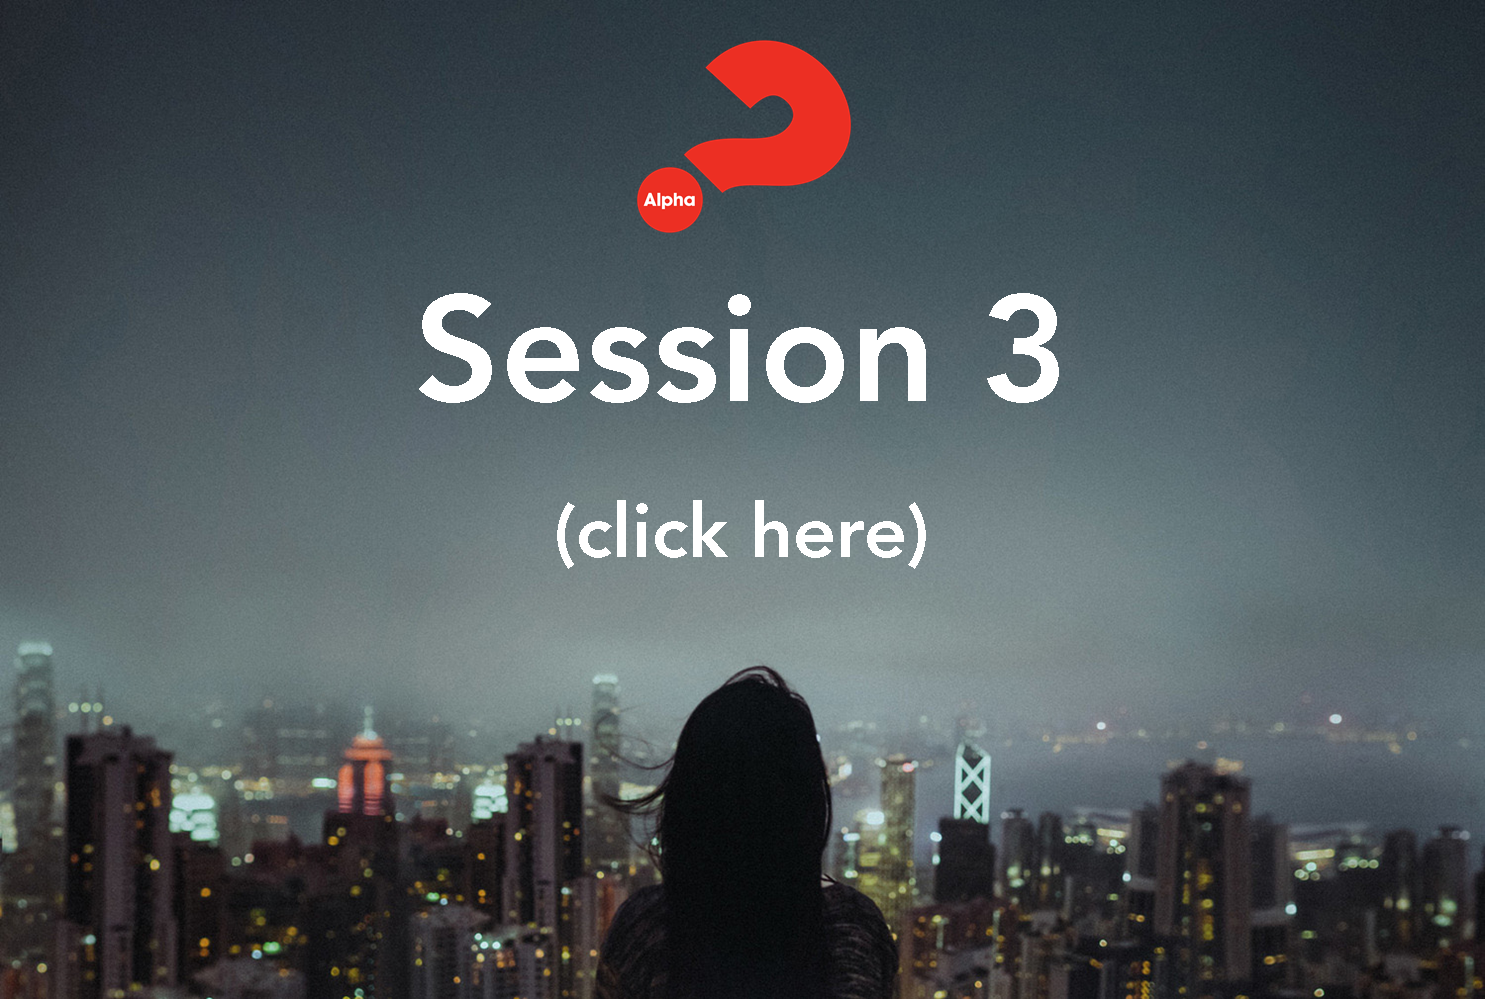 Session 3 WB.png